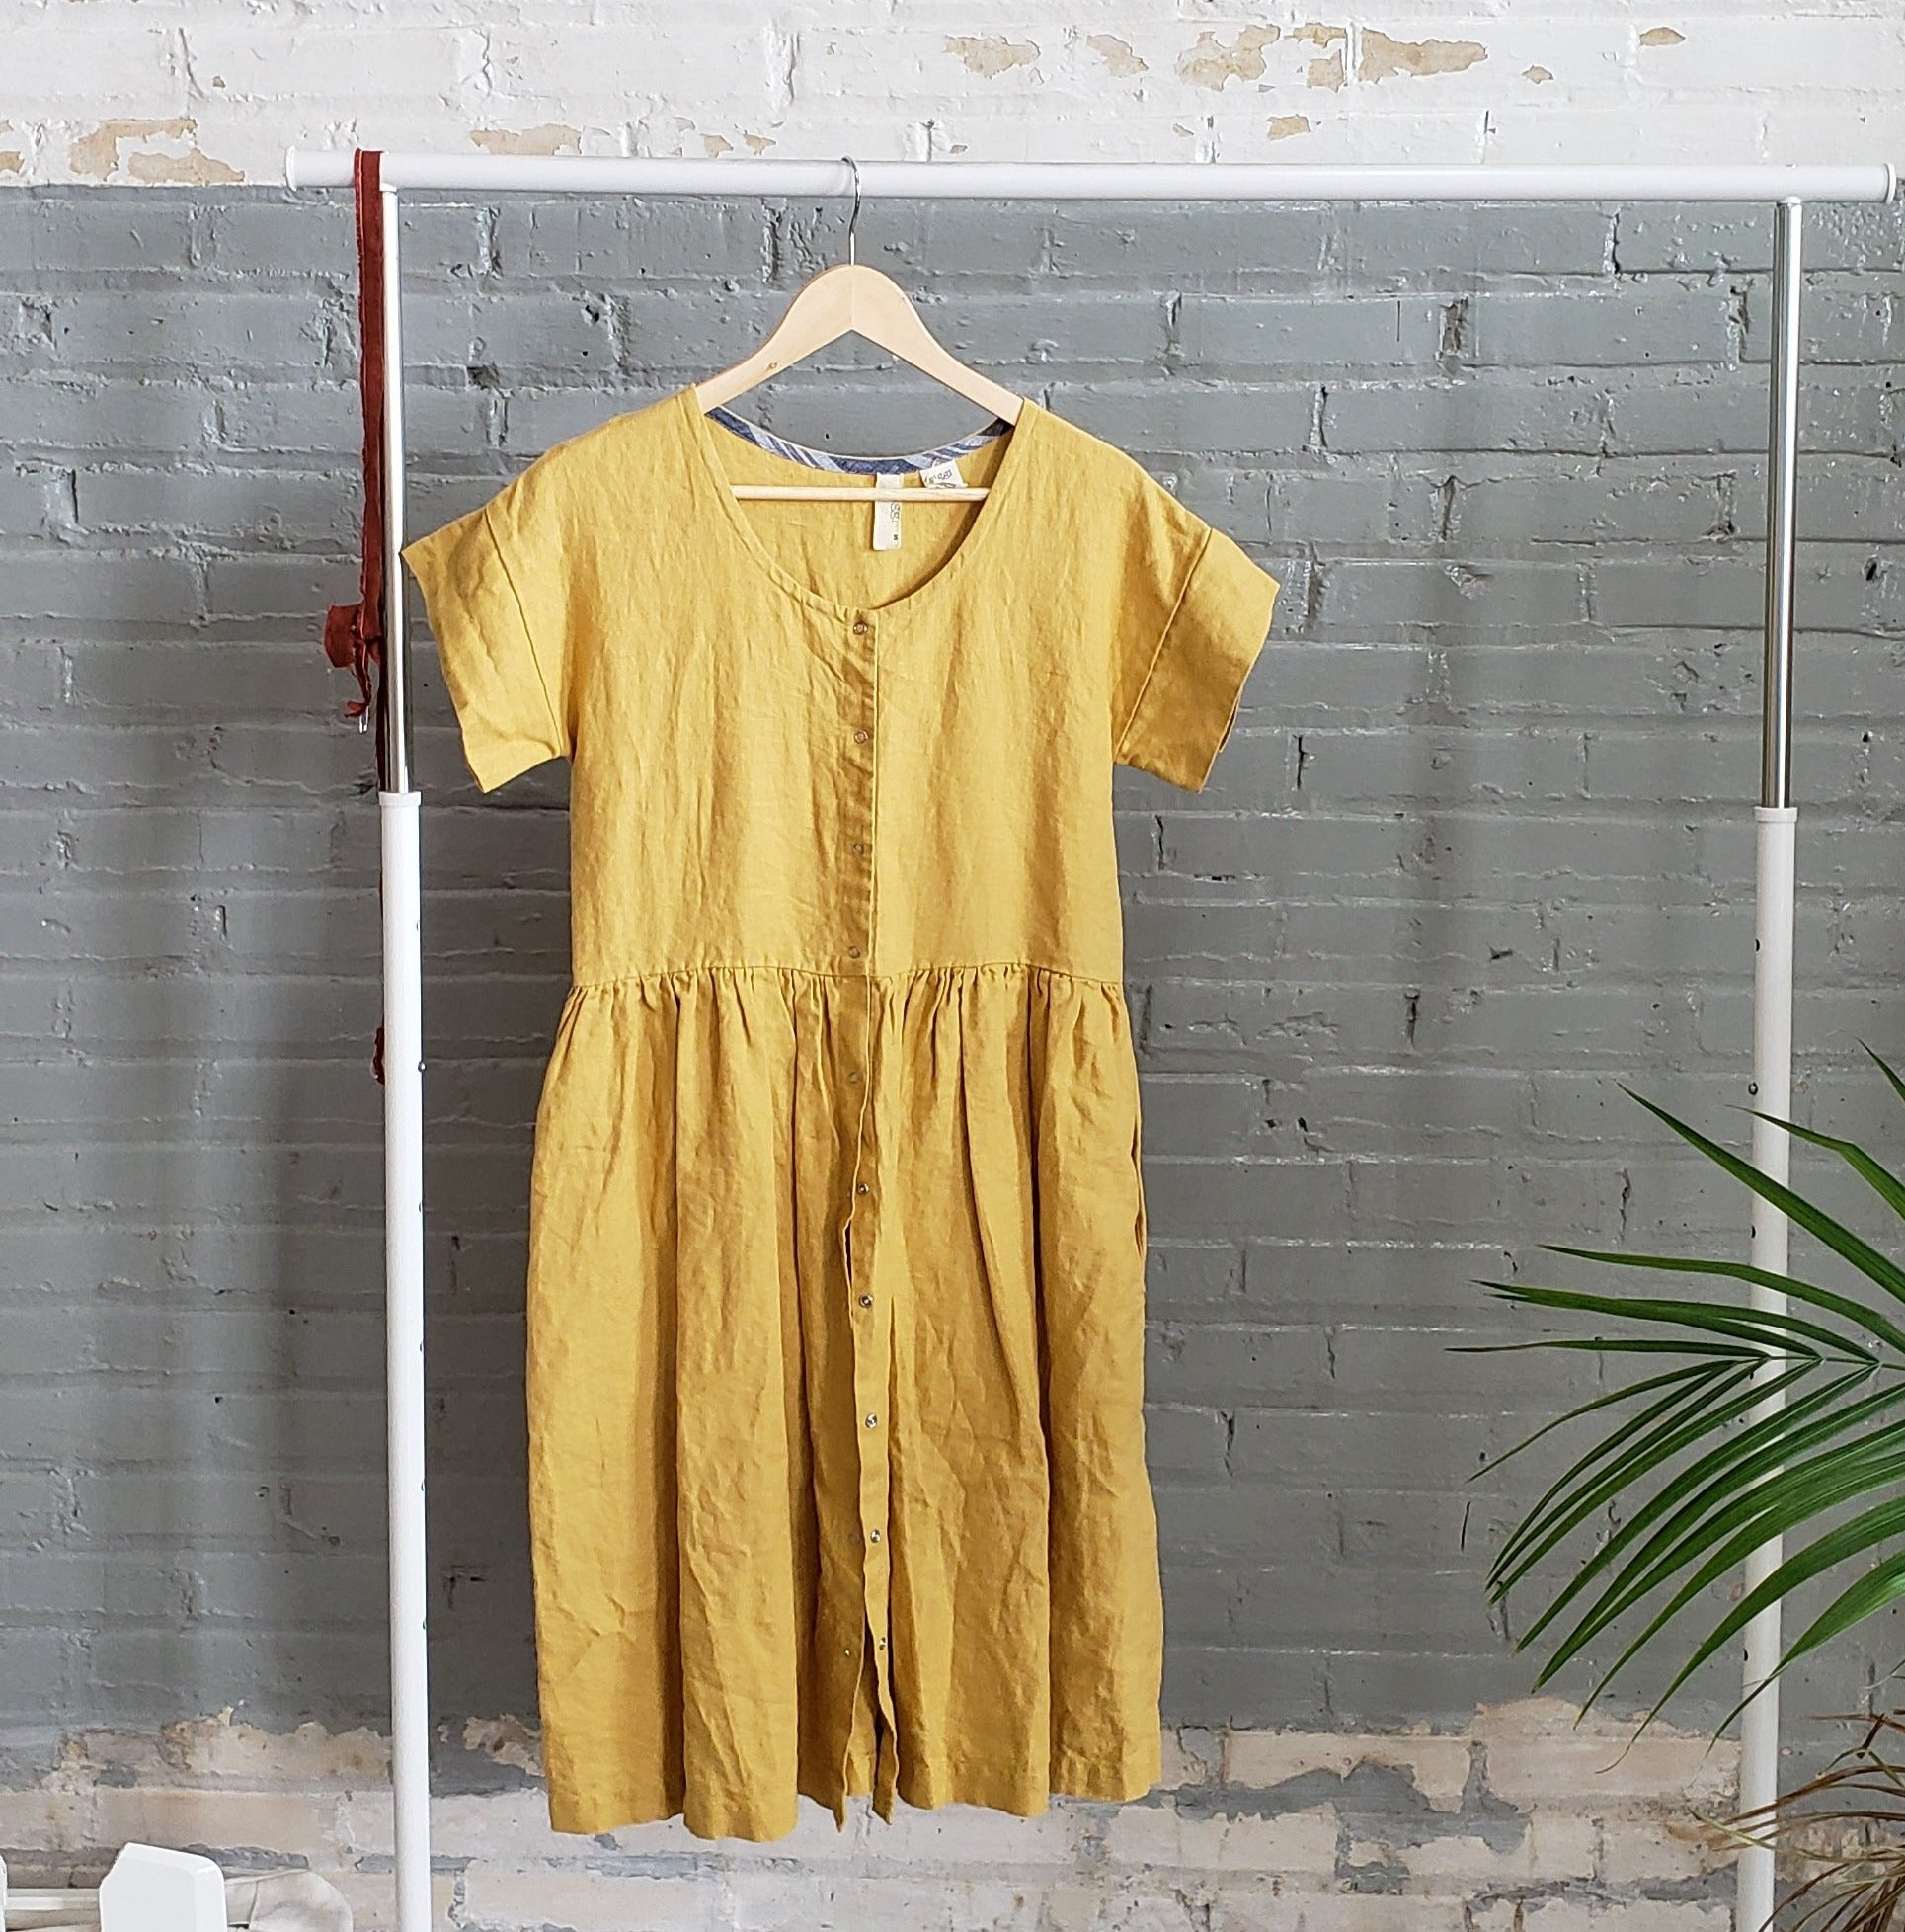 yellow linen short sleeve dress with gathered skirt hanging on a clothing rack beside a grey brick wall